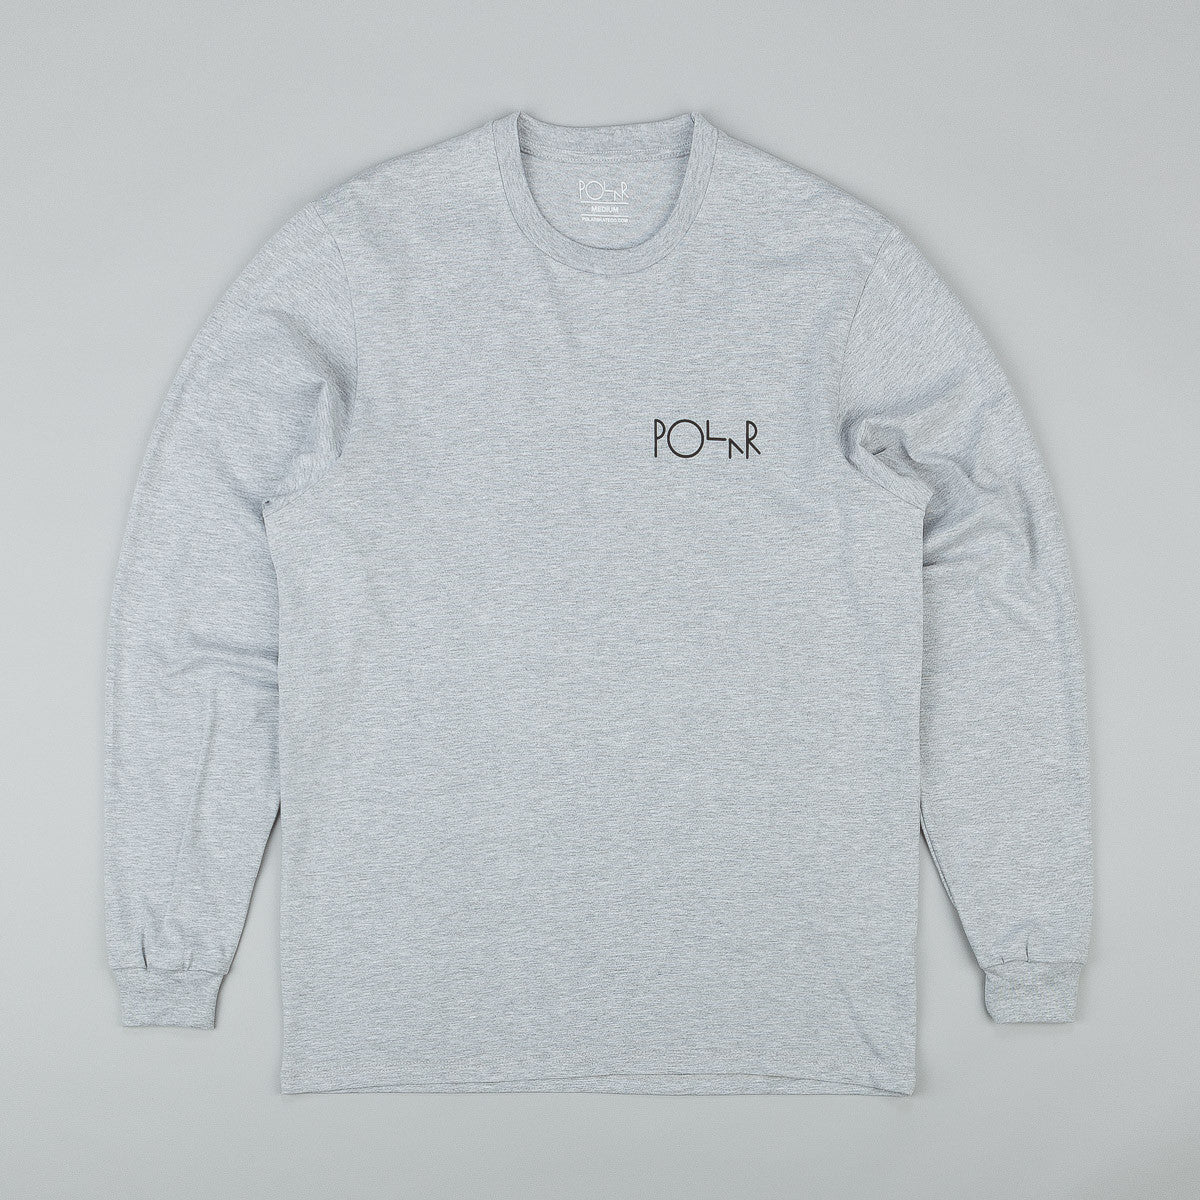 Polar Fill Logo Behind The Curtain Long Sleeve T-Shirt - Grey Heather / Black